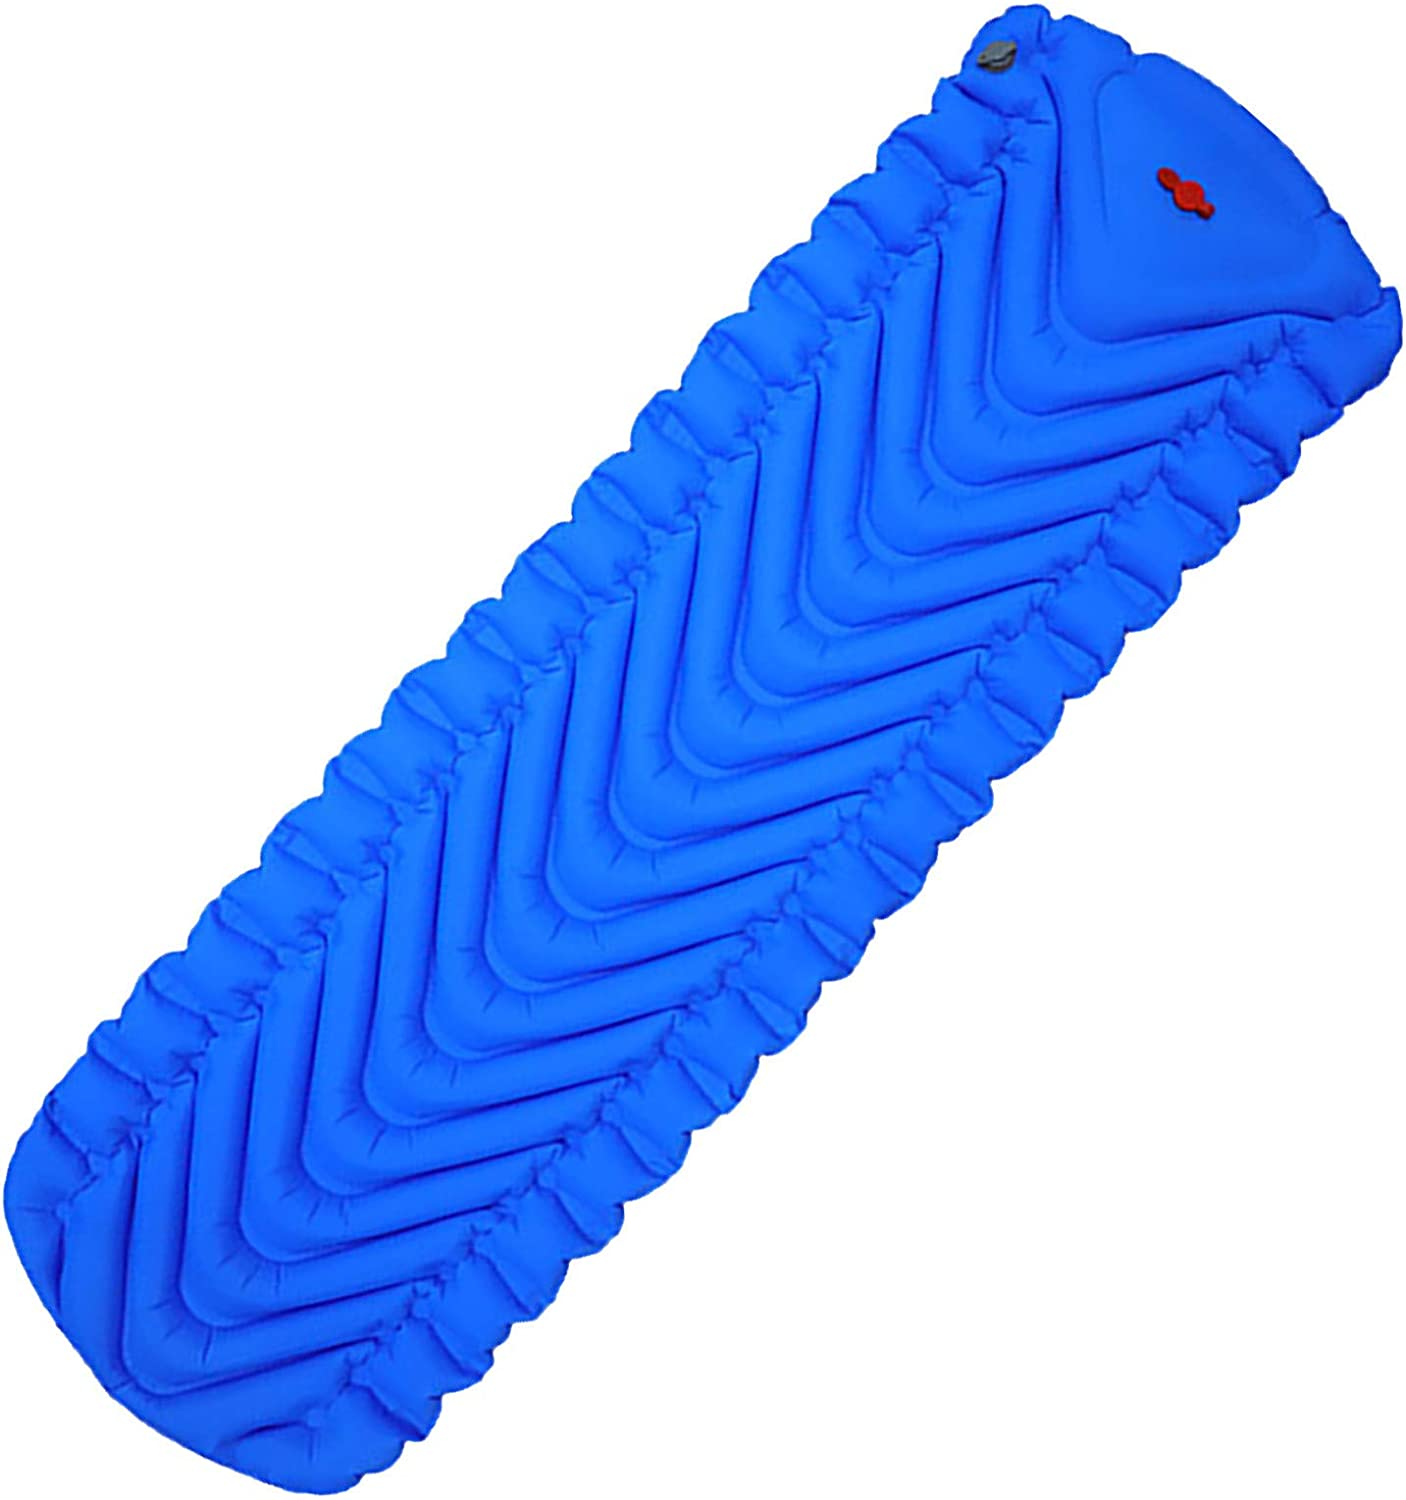 Outdoor Foot Max 67% OFF TPU Inflatable Cushion Sand Proof Ma V Shaped Charlotte Mall Beach